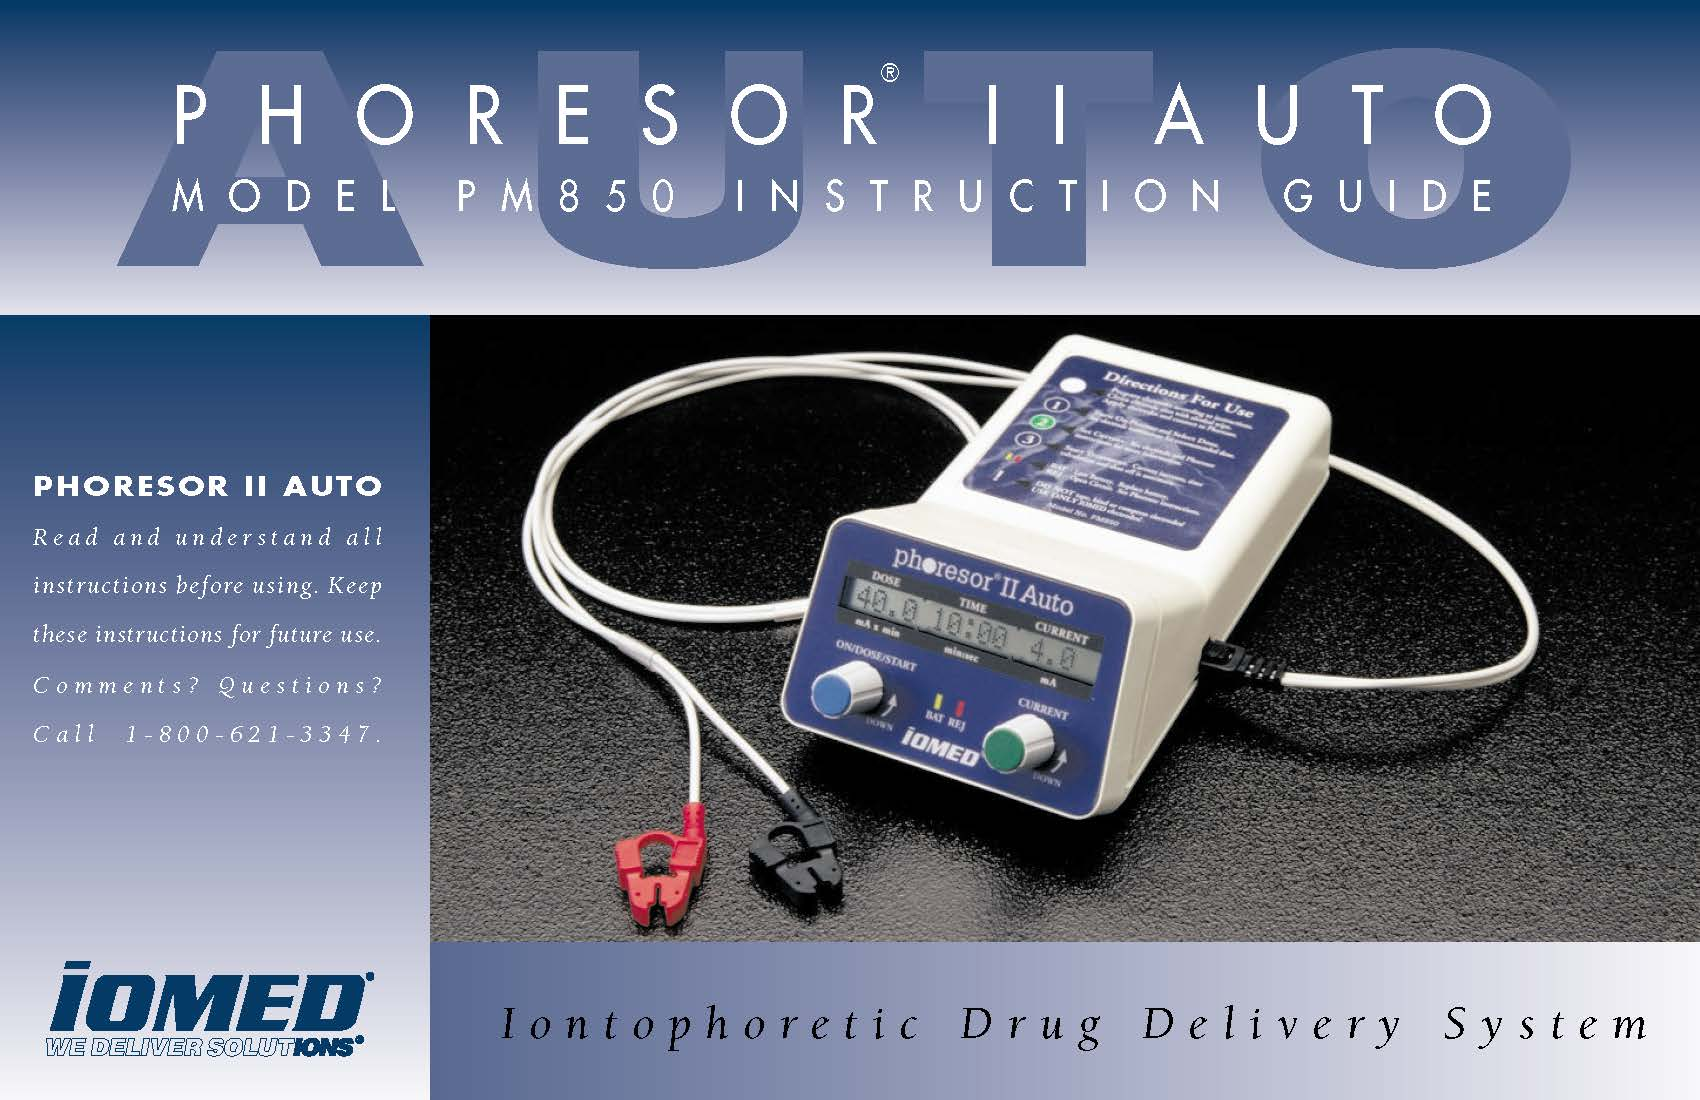 Phoresor II Auto PM850 Instruction Guide